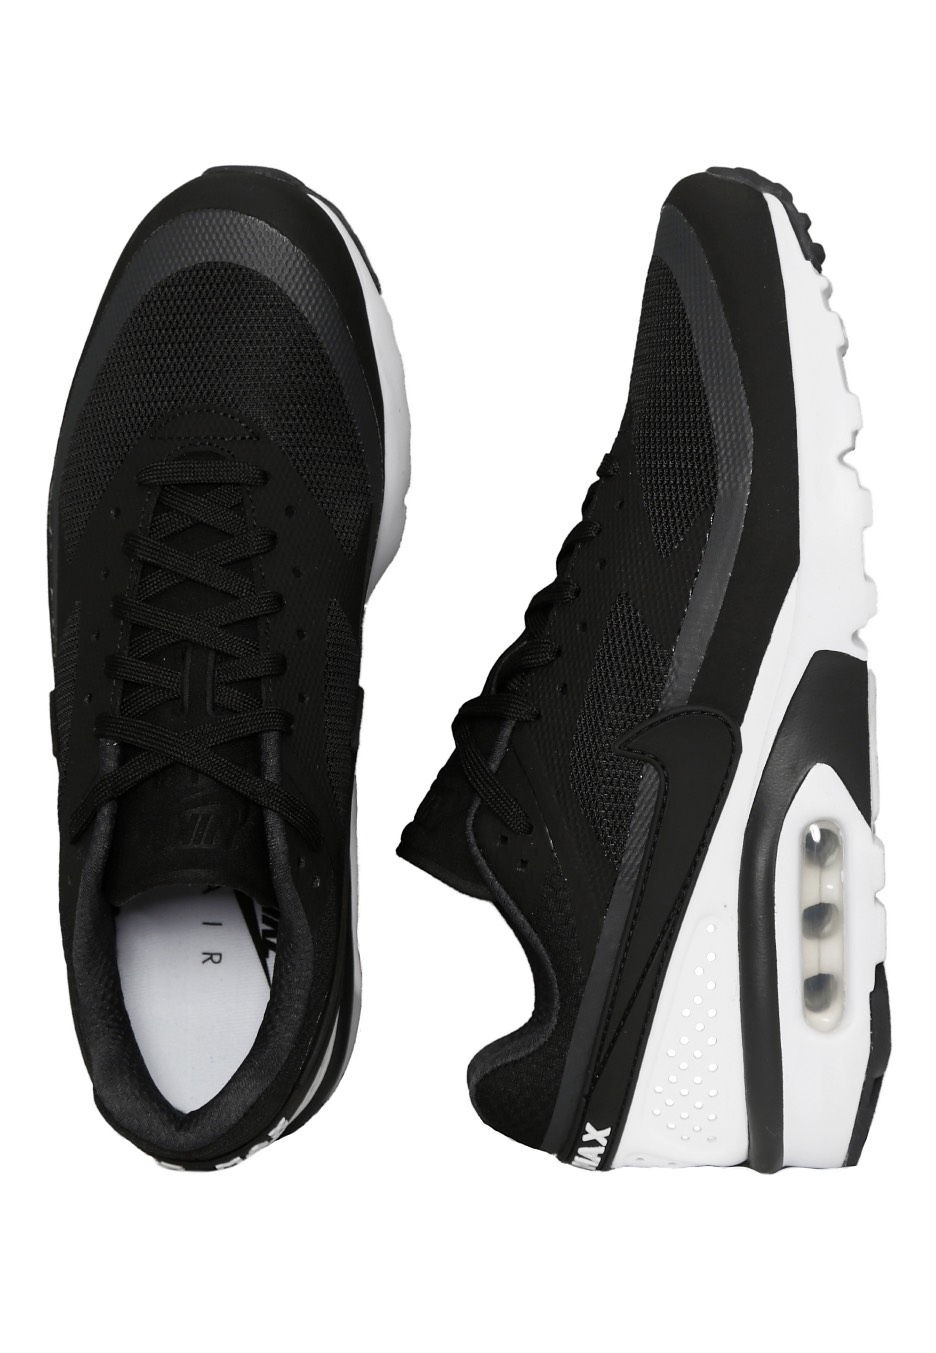 2696f82424a Nike - Air Max BW Ultra Black Black Anthracite - Shoes - Impericon.com  Worldwide